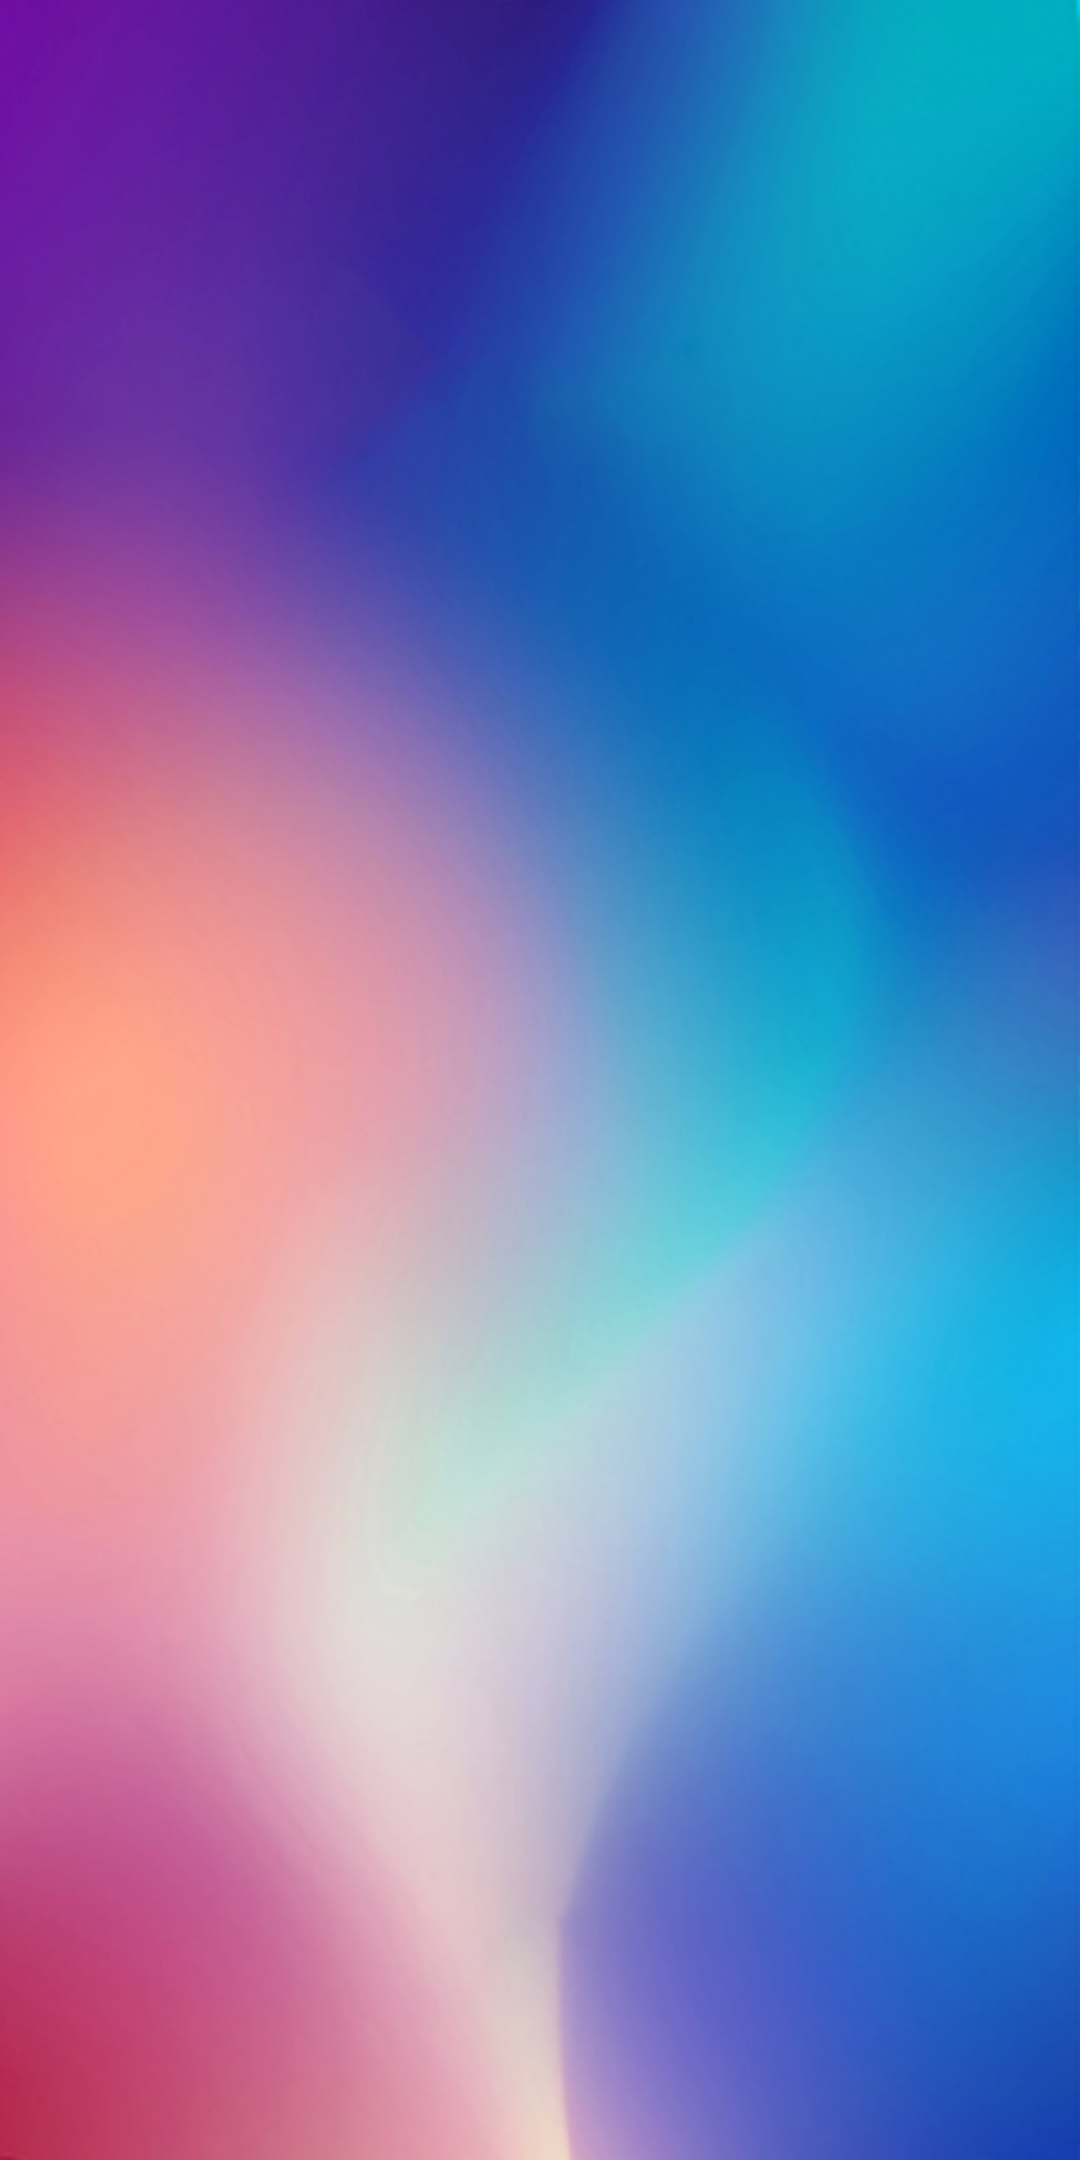 Download Xiaomi Mi 9 Wallpapers To Customize Your Old Smartphone